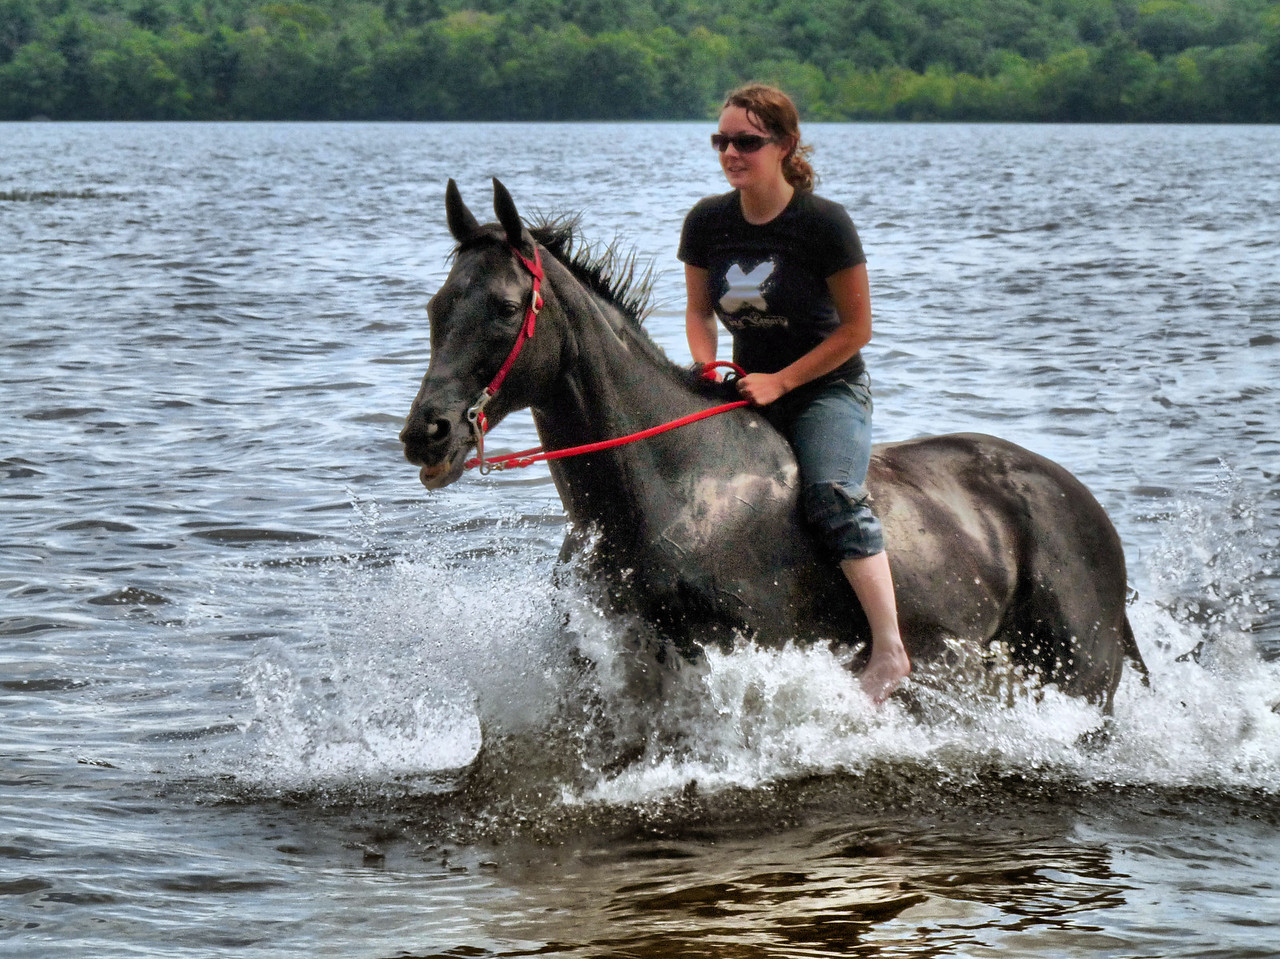 "July 24, 2009<br /> I'm not real happy with the final outcome of this photo. I'm at a real loss here. I know it can be better as it looks pretty washed out. The conditions were harsh- high sun, wet, black horse, white water trying to be blue!.... In trying to bring out some definition to the horse, the shot took on a rather pixelated look. It's not cropped. I'm just going to walk away from it for a bit and get back to my vacation pictures-all 1100 of them! I thought I'd spare you all a weeks worth of dailies and just put up a gallery instead. So, I'm back, with all my random shooting habits!<br /> This photo was taken at Assawompsett Pond. There was a man in this photo too but, I'm proud to say in that PP way, I got rid of him! This gal had taken the trails down to this remote area where we arrived by our little boat. First she had to ""undress"" the horse. What a process!  They kept going into the water, standing there for a few minutes and then running out. It was fun to watch. Then she gave Emma a ride after she got Miss Princess all dolled up again. I love unplanned treats like that!<br /> It's nice to be home!<br /> As a side note to what some of you might be wondering...the man was originally to the far right, just behind the rump and the back splash area. I had to ""put the splash back"" after I made him disappear into blue water!  And yes, I'm sort of proud of myself for spending that much time learning something new and getting it right. <br /> ~~Two months later.....I have now figured out why I was having such a hard time working with this shot. When I was shooting this series of shots, I was shooting in burst mode. Well, unbeknownst to me, burst mode doesn't utilize the full 10 MP, just 3 MP. So, I was working with a really low quality picture to start with. Now I know...and so do you."